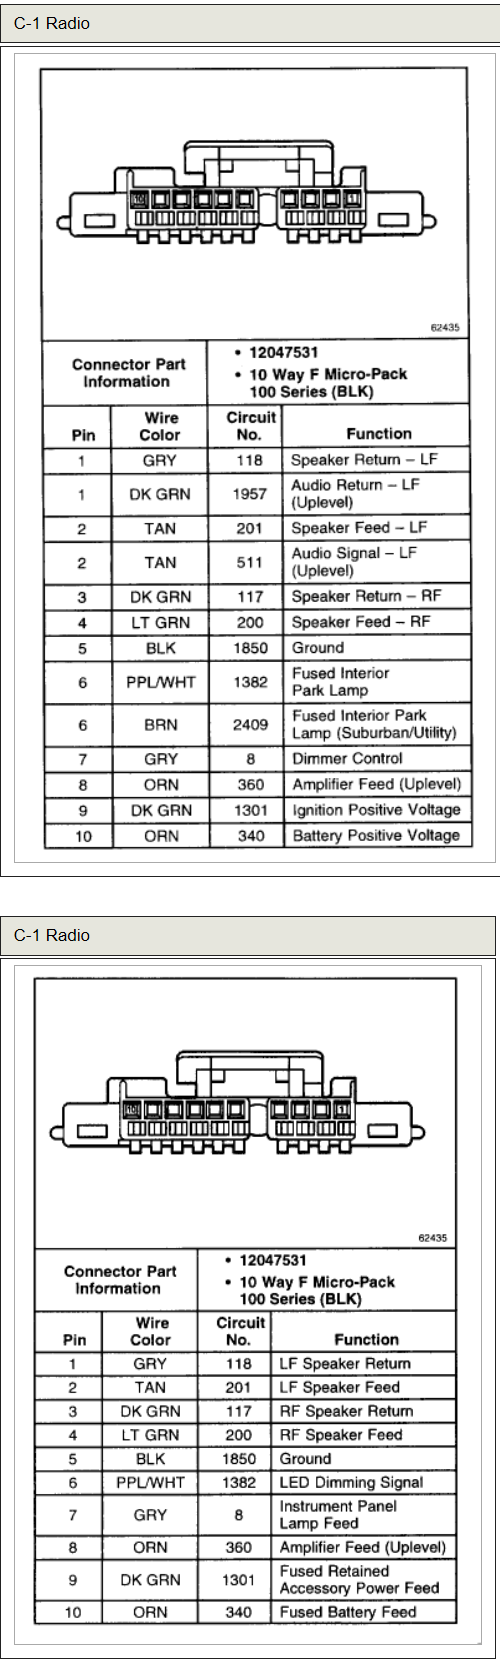 [SCHEMATICS_4US]  CHEVROLET Car Radio Stereo Audio Wiring Diagram Autoradio connector wire  installation schematic schema esquema de conexiones Anschlusskammern  konektor | 2004 Impala Radio Wiring Diagram |  | Schematics diagrams, car radio wiring diagram, freeware software